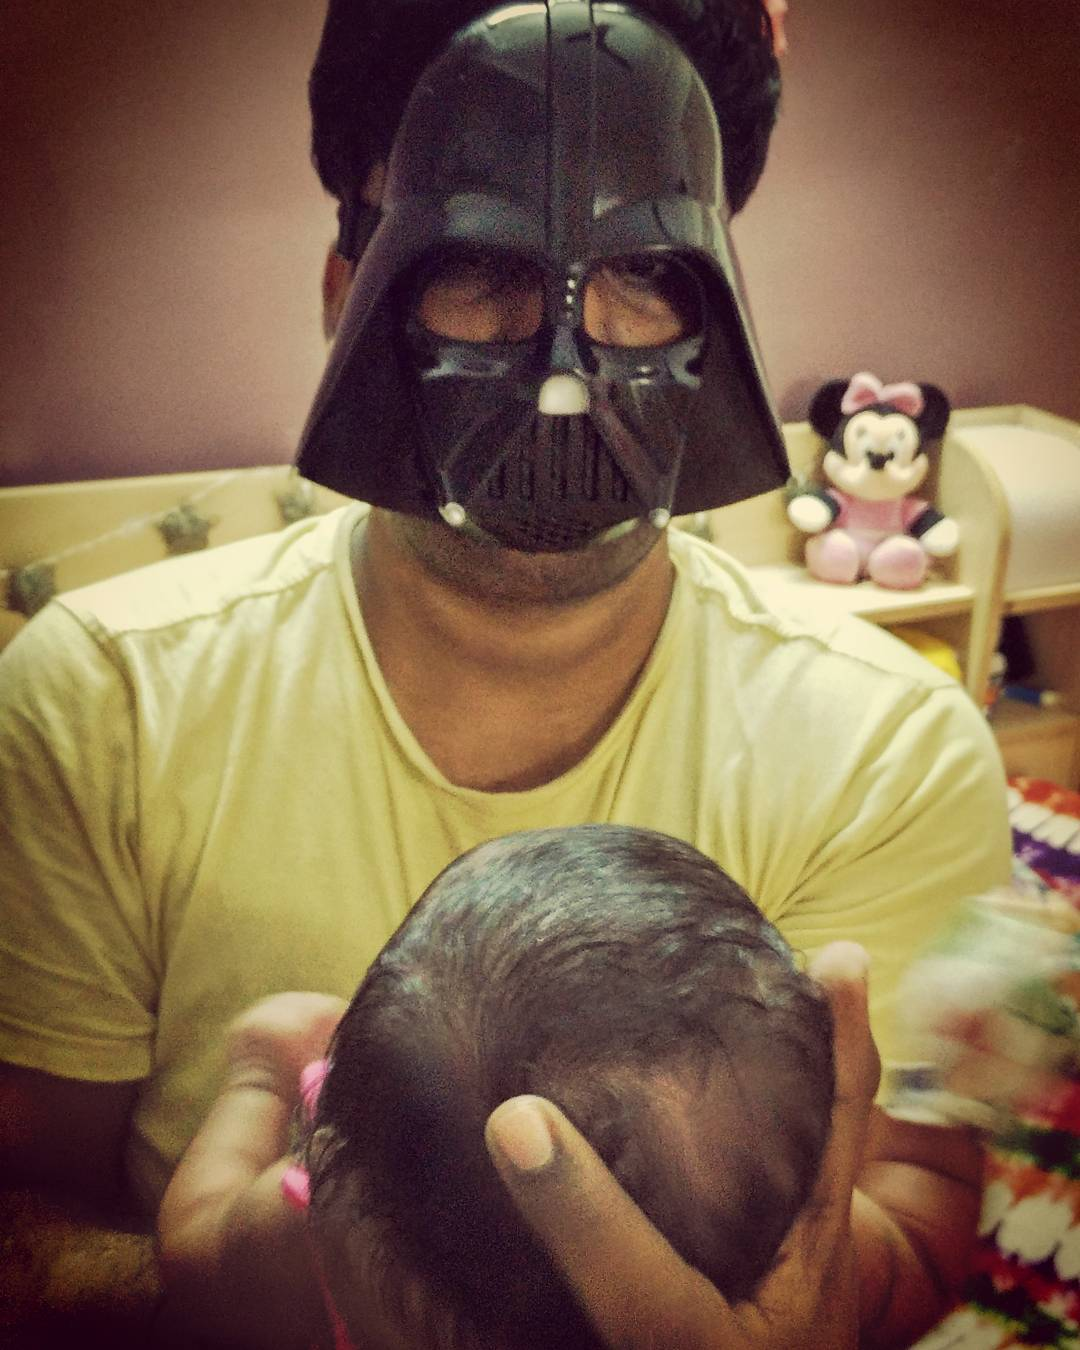 *Heavy Breathing* I am your Father *Exhale*  Welcome to the Dark Side. We've got Cookies & Toys!  Proud be Father of a Beautiful Daughter - Dhyana Desai.  #starwars #darthvader #darkside #OHMYGODIAMAFATHER!